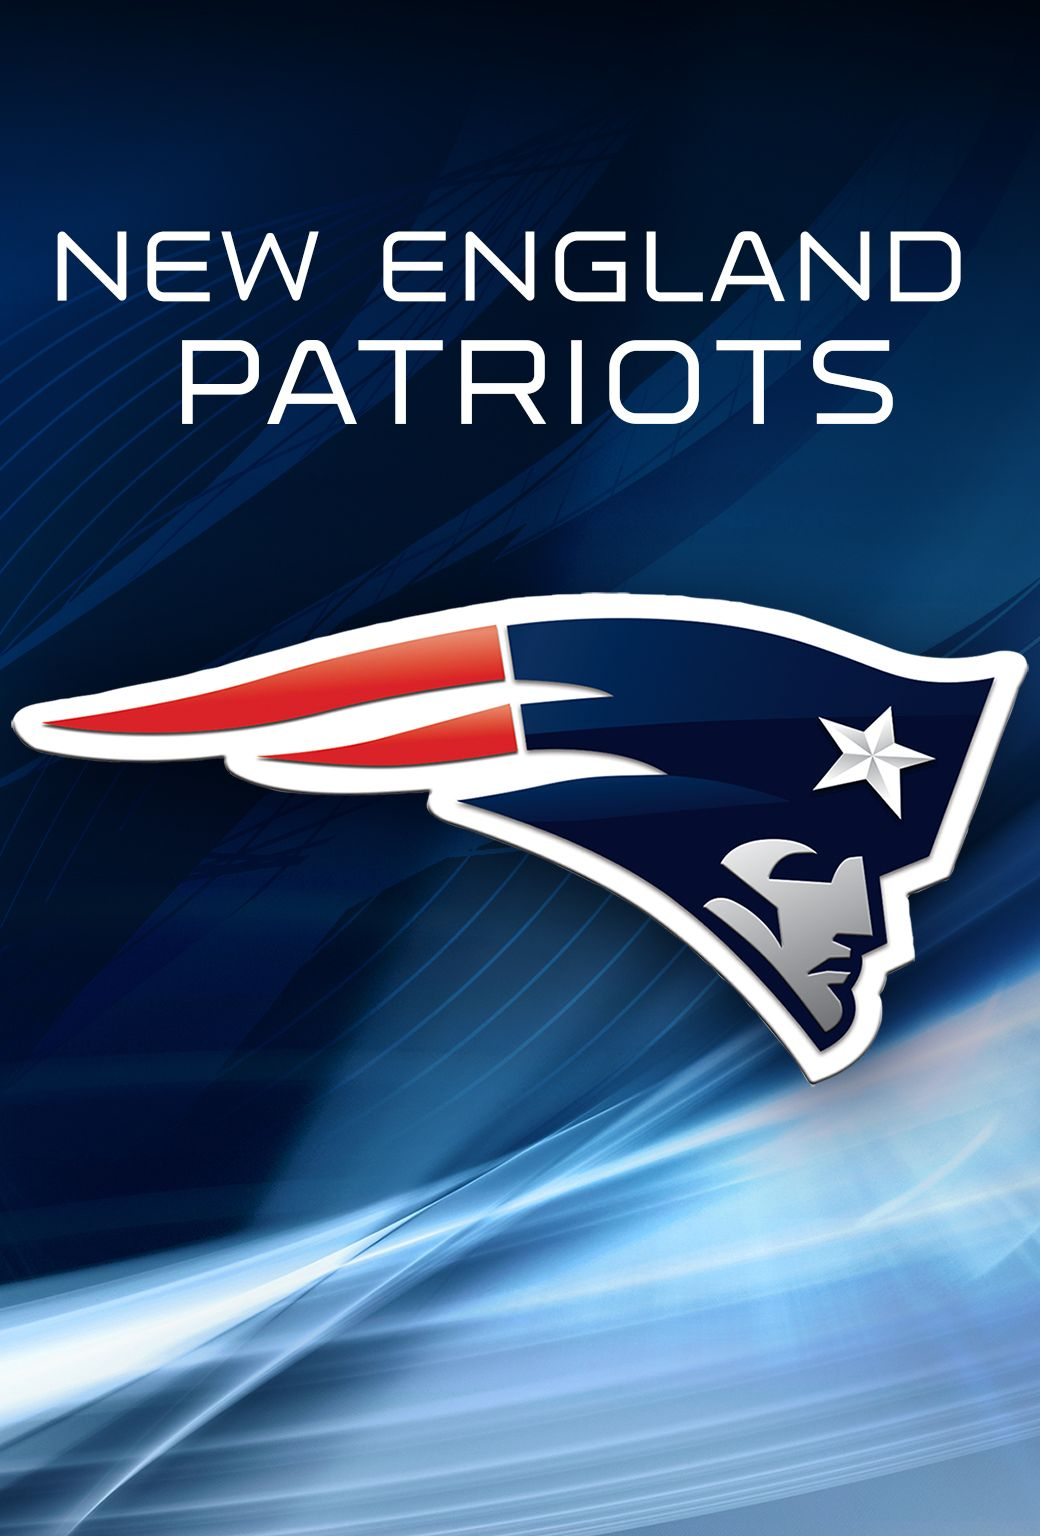 Pin By Patrycja Figura On New England Patriots New England Patriots Wallpaper New England Patriots New England Patriots Logo